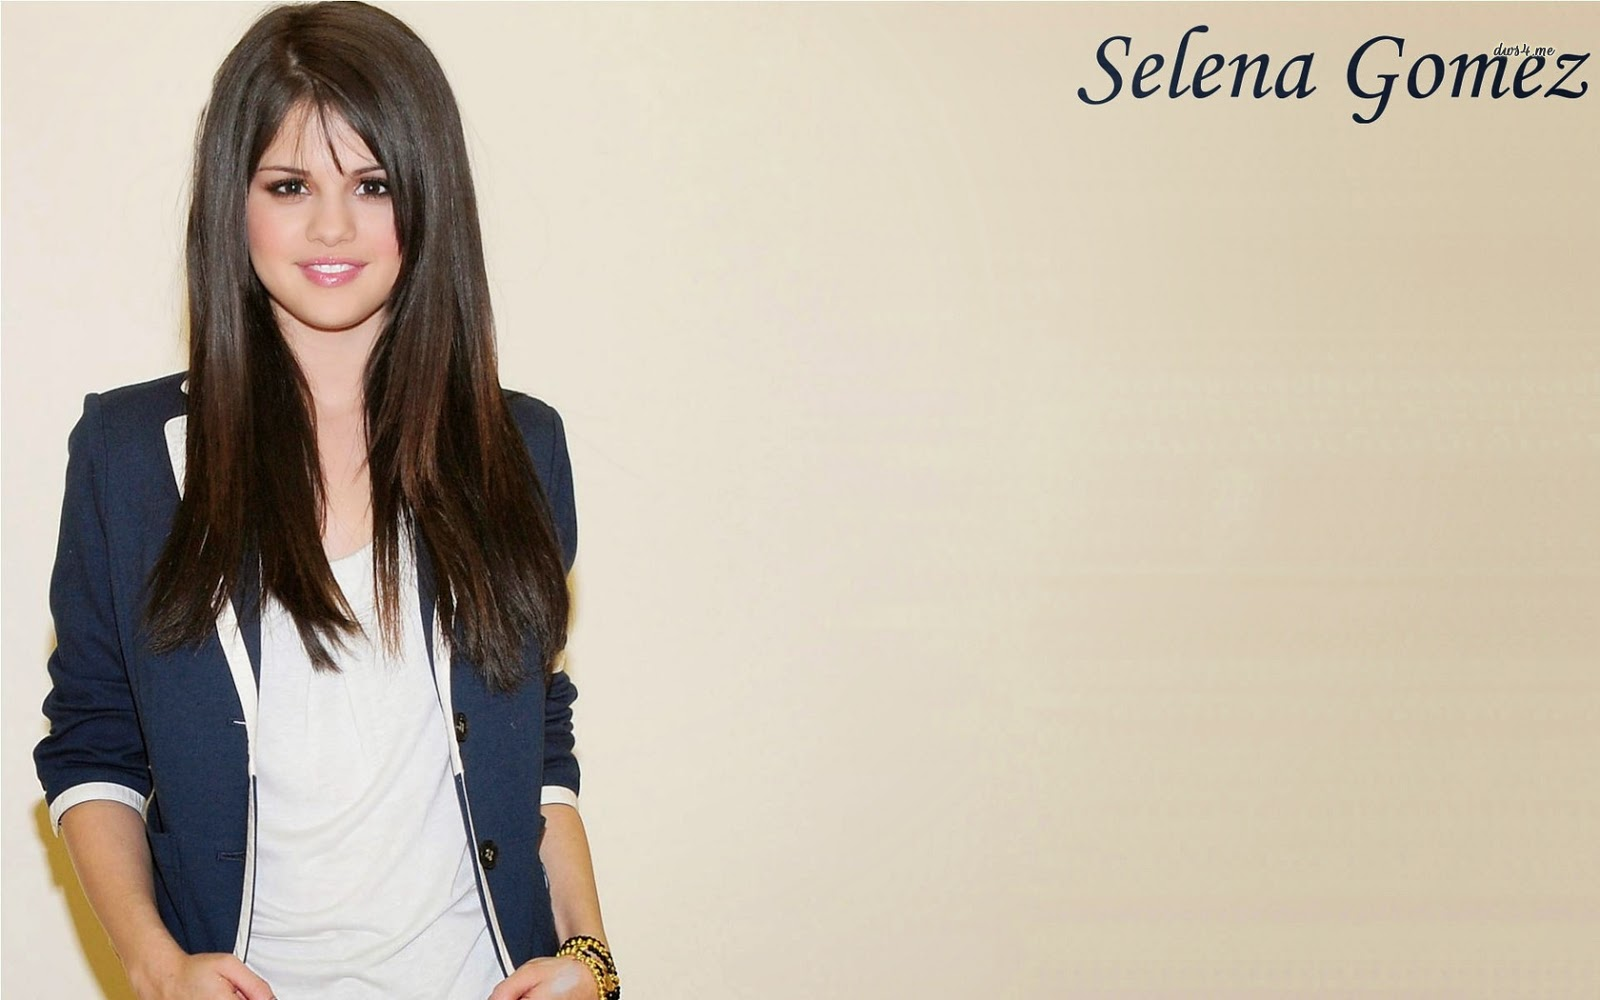 Girls Wallpaper 2015 Selena Gomez Wallpapers For Facebook 1600x1000